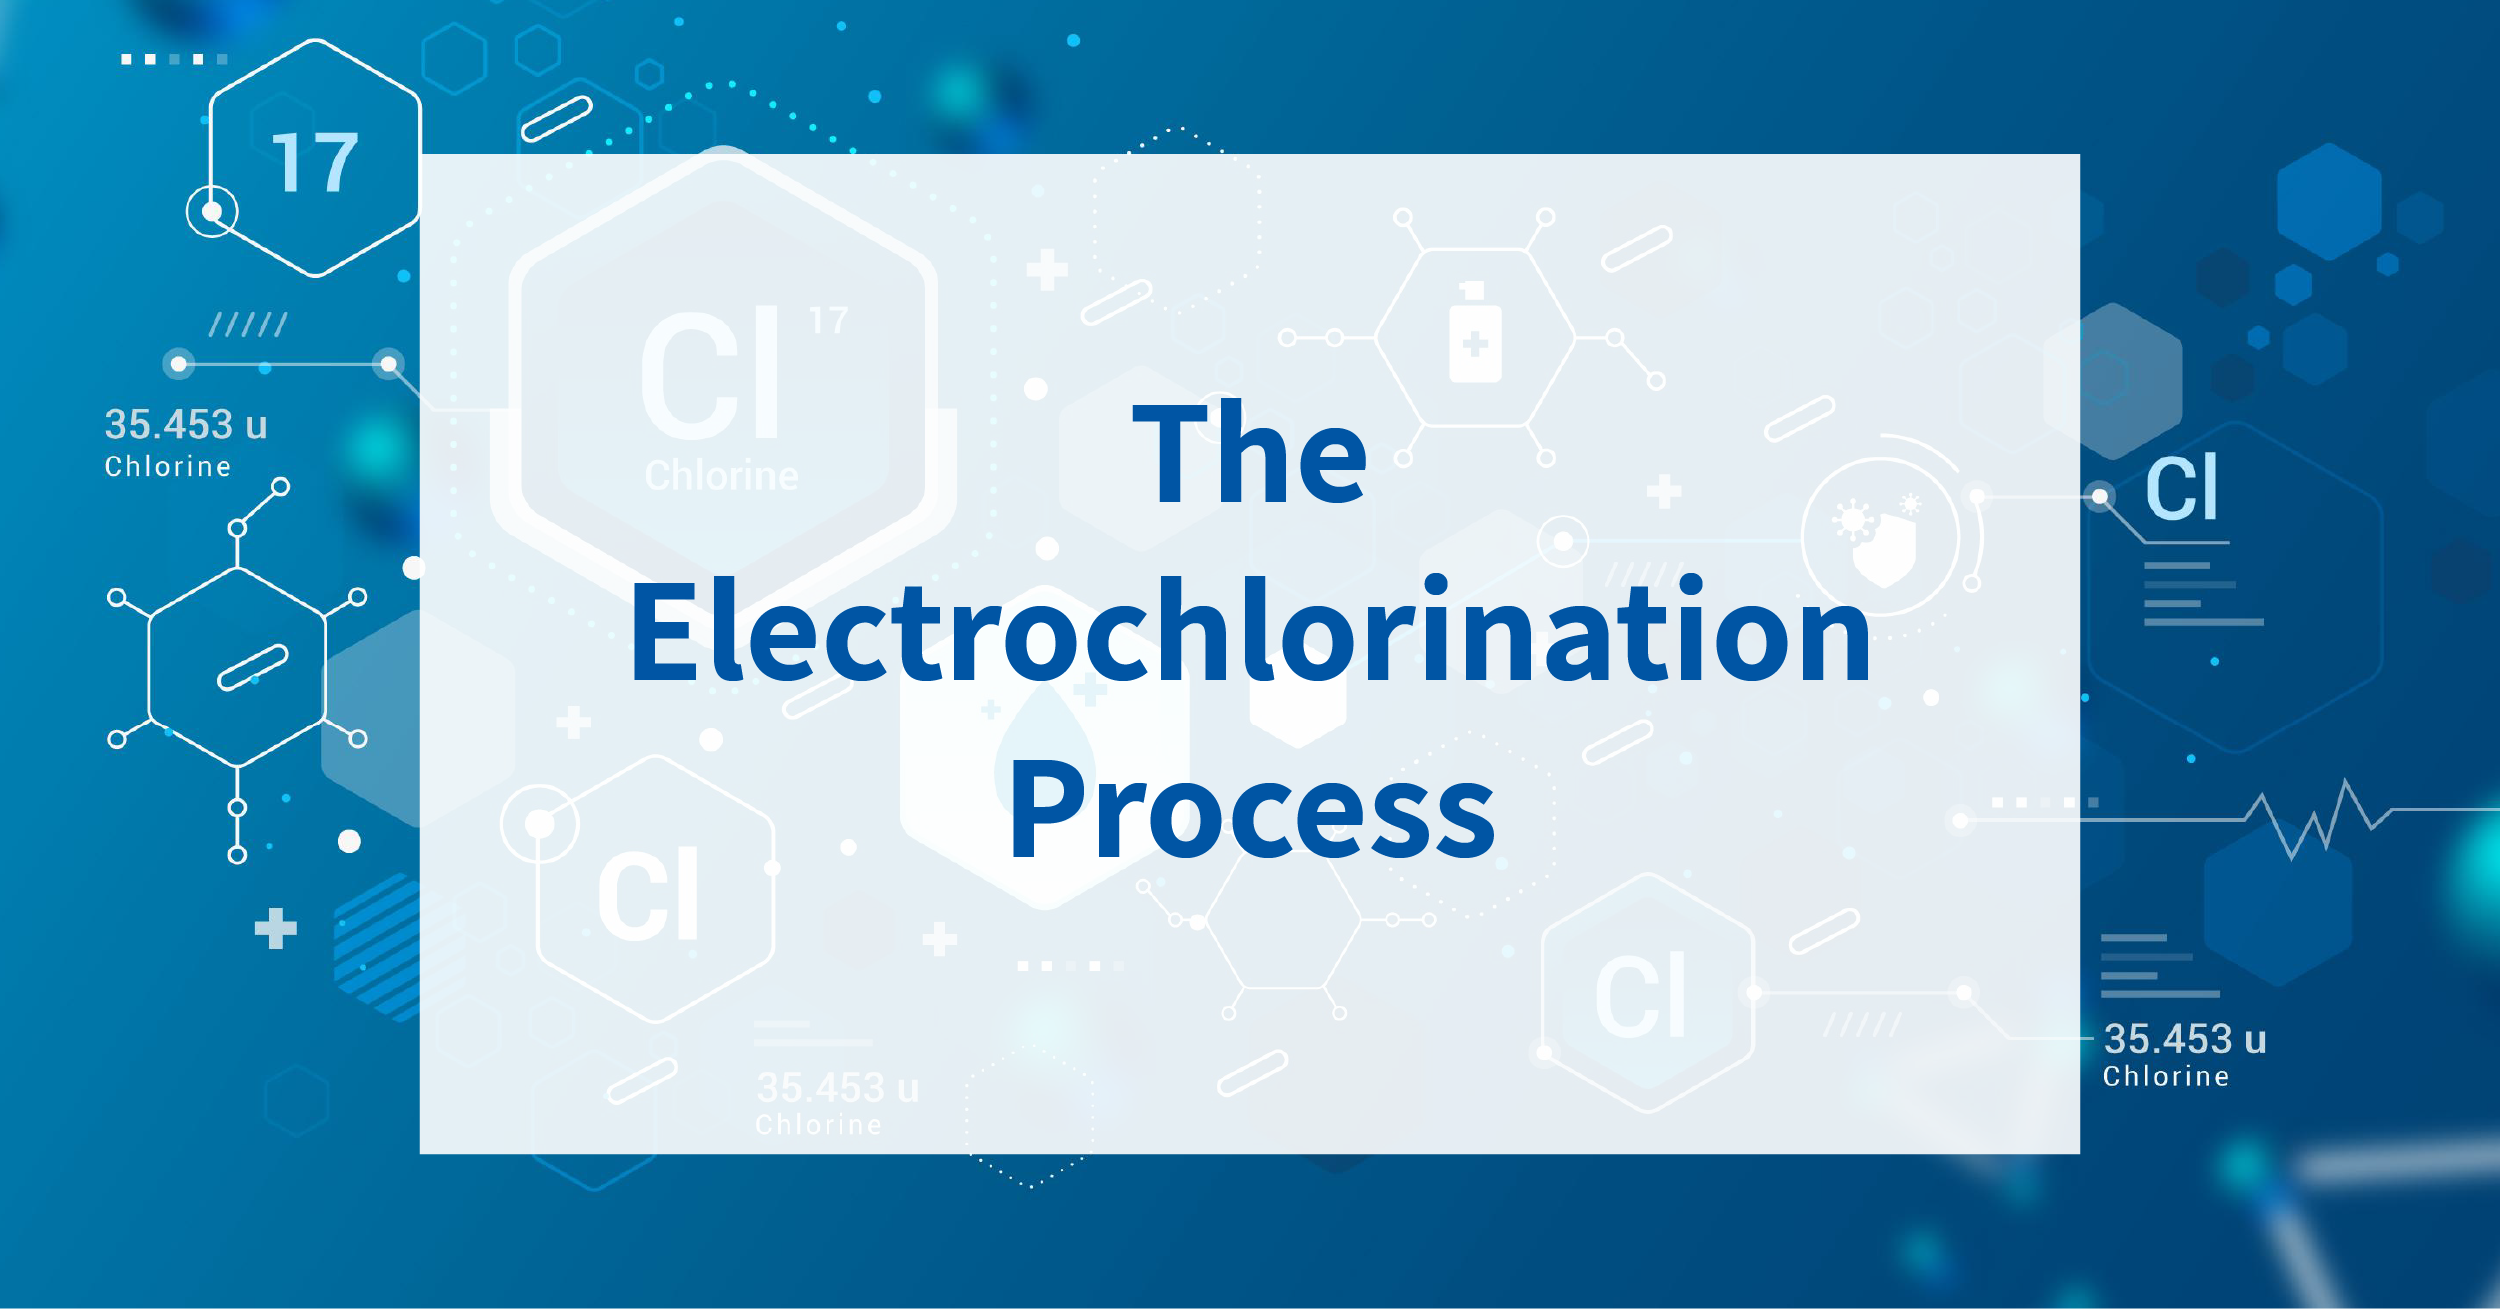 The electrochlorination process